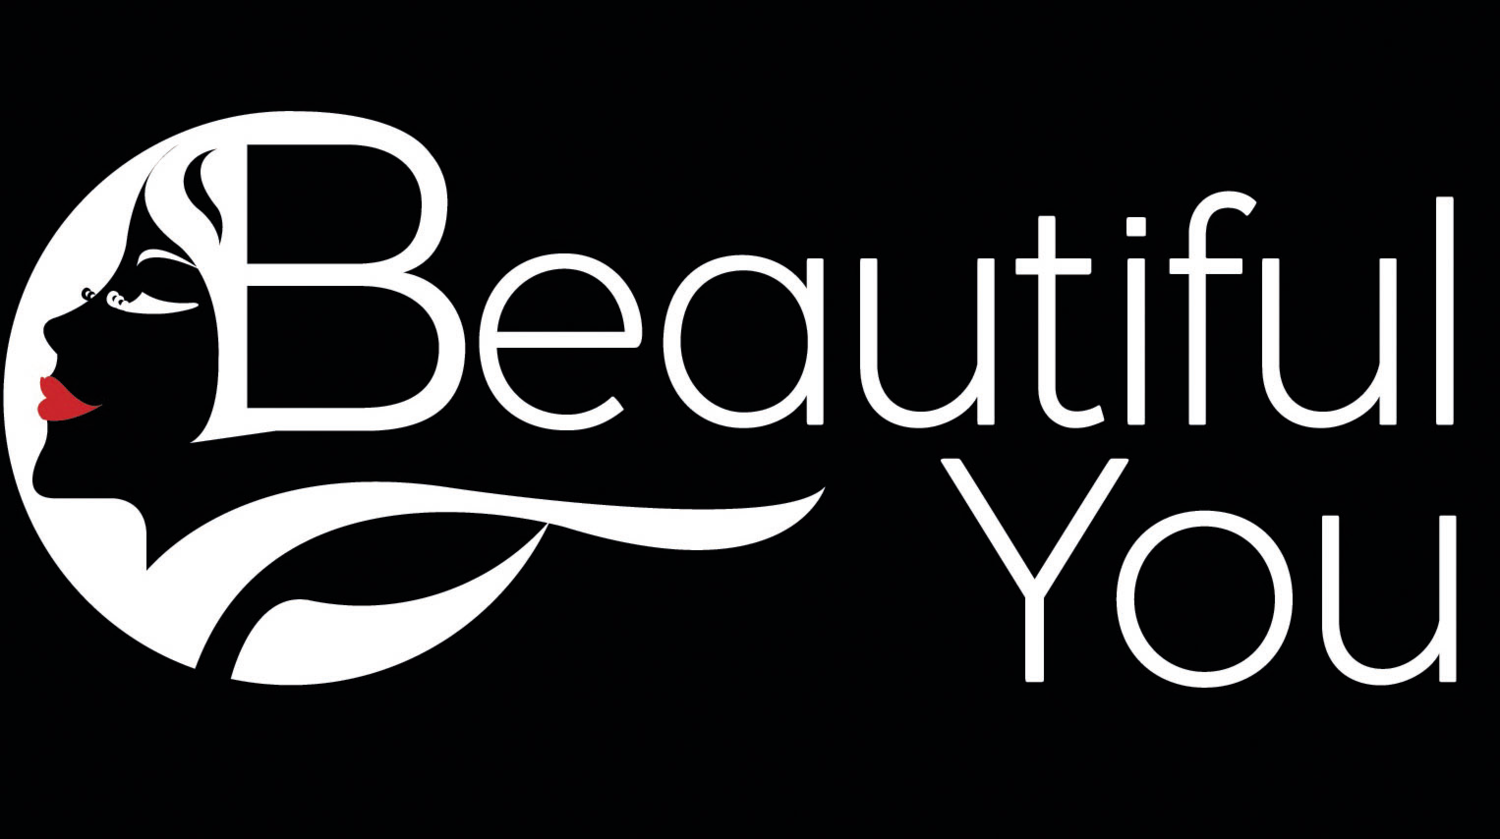 Beautiful You Makeup Artist